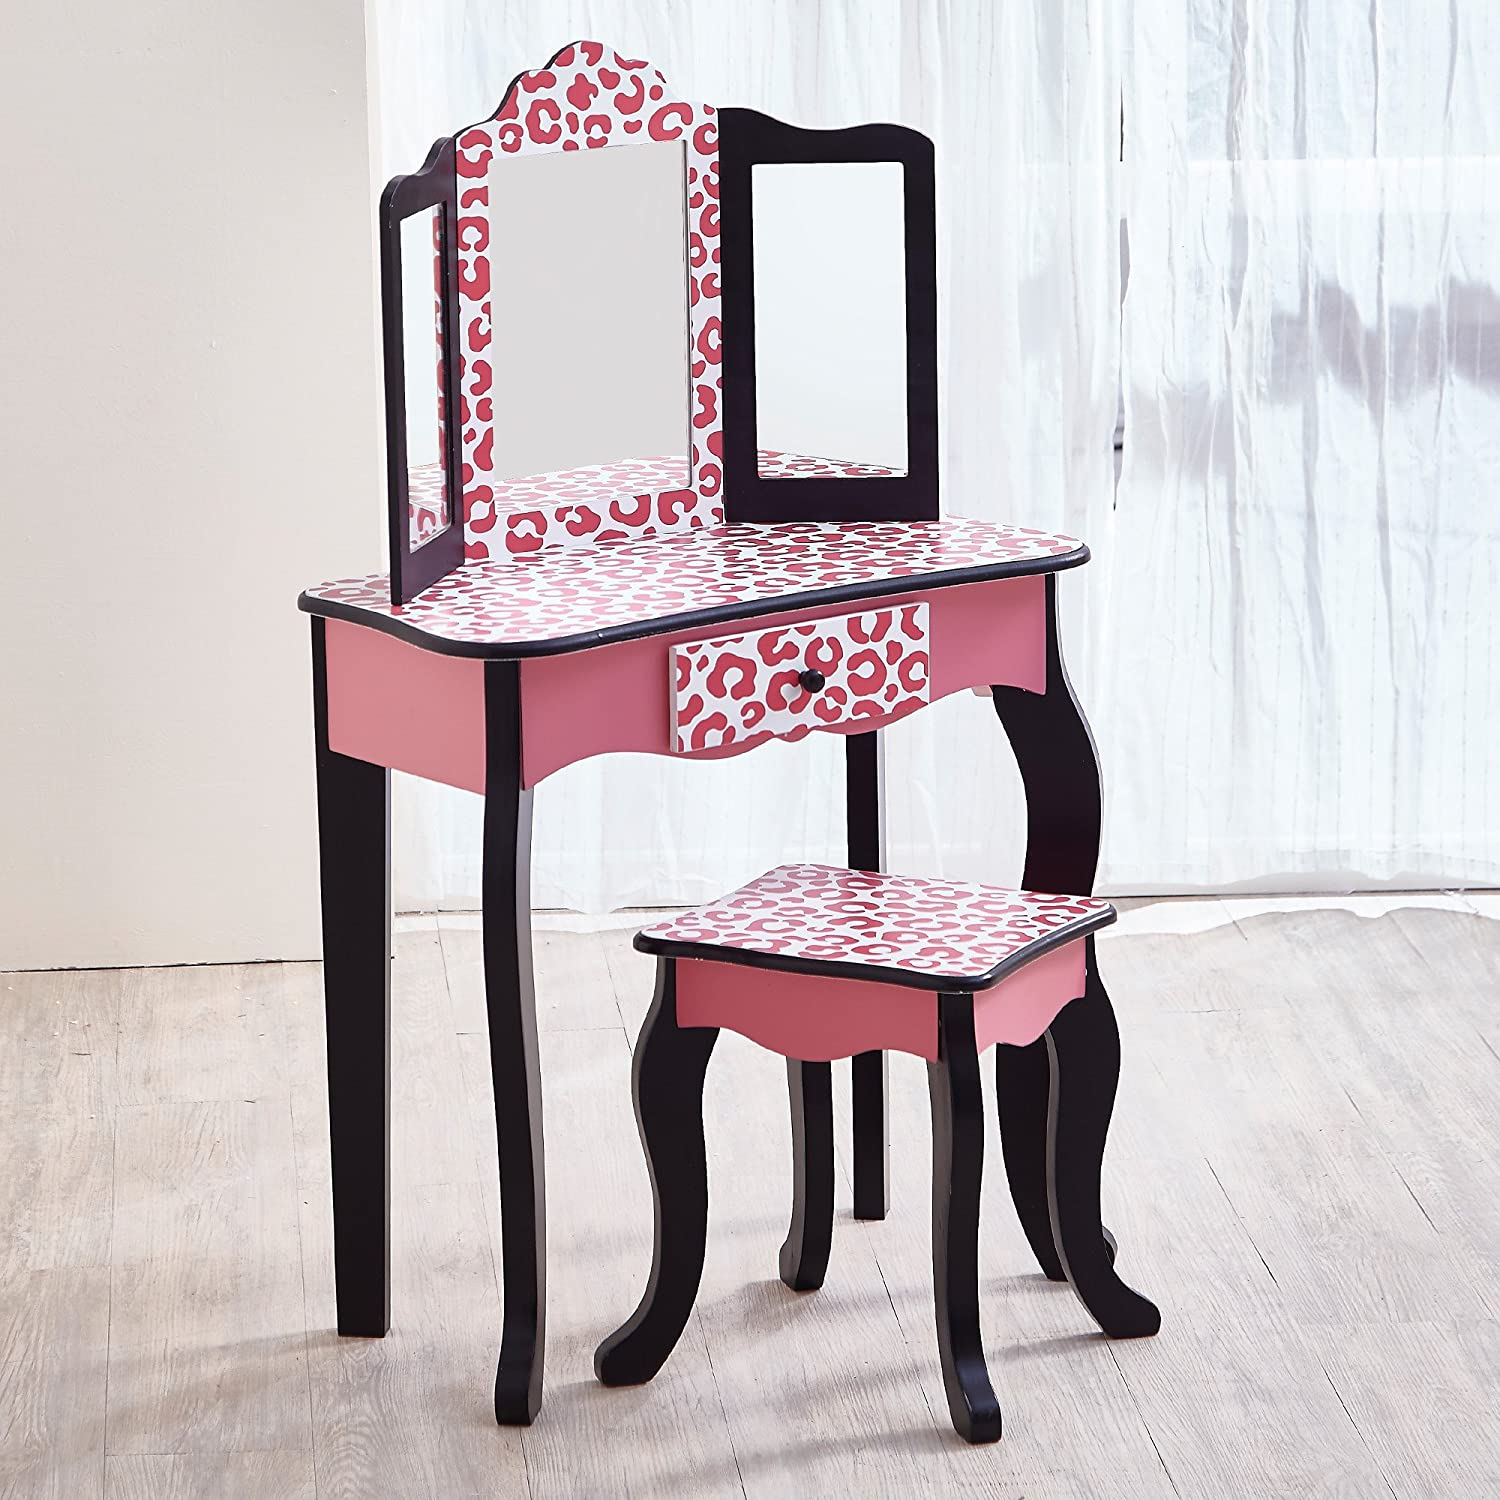 Teamson Kids  Fashion Prints Girls Vanity Table and Stool Set with Mirror  Leopard (Pink  Black)